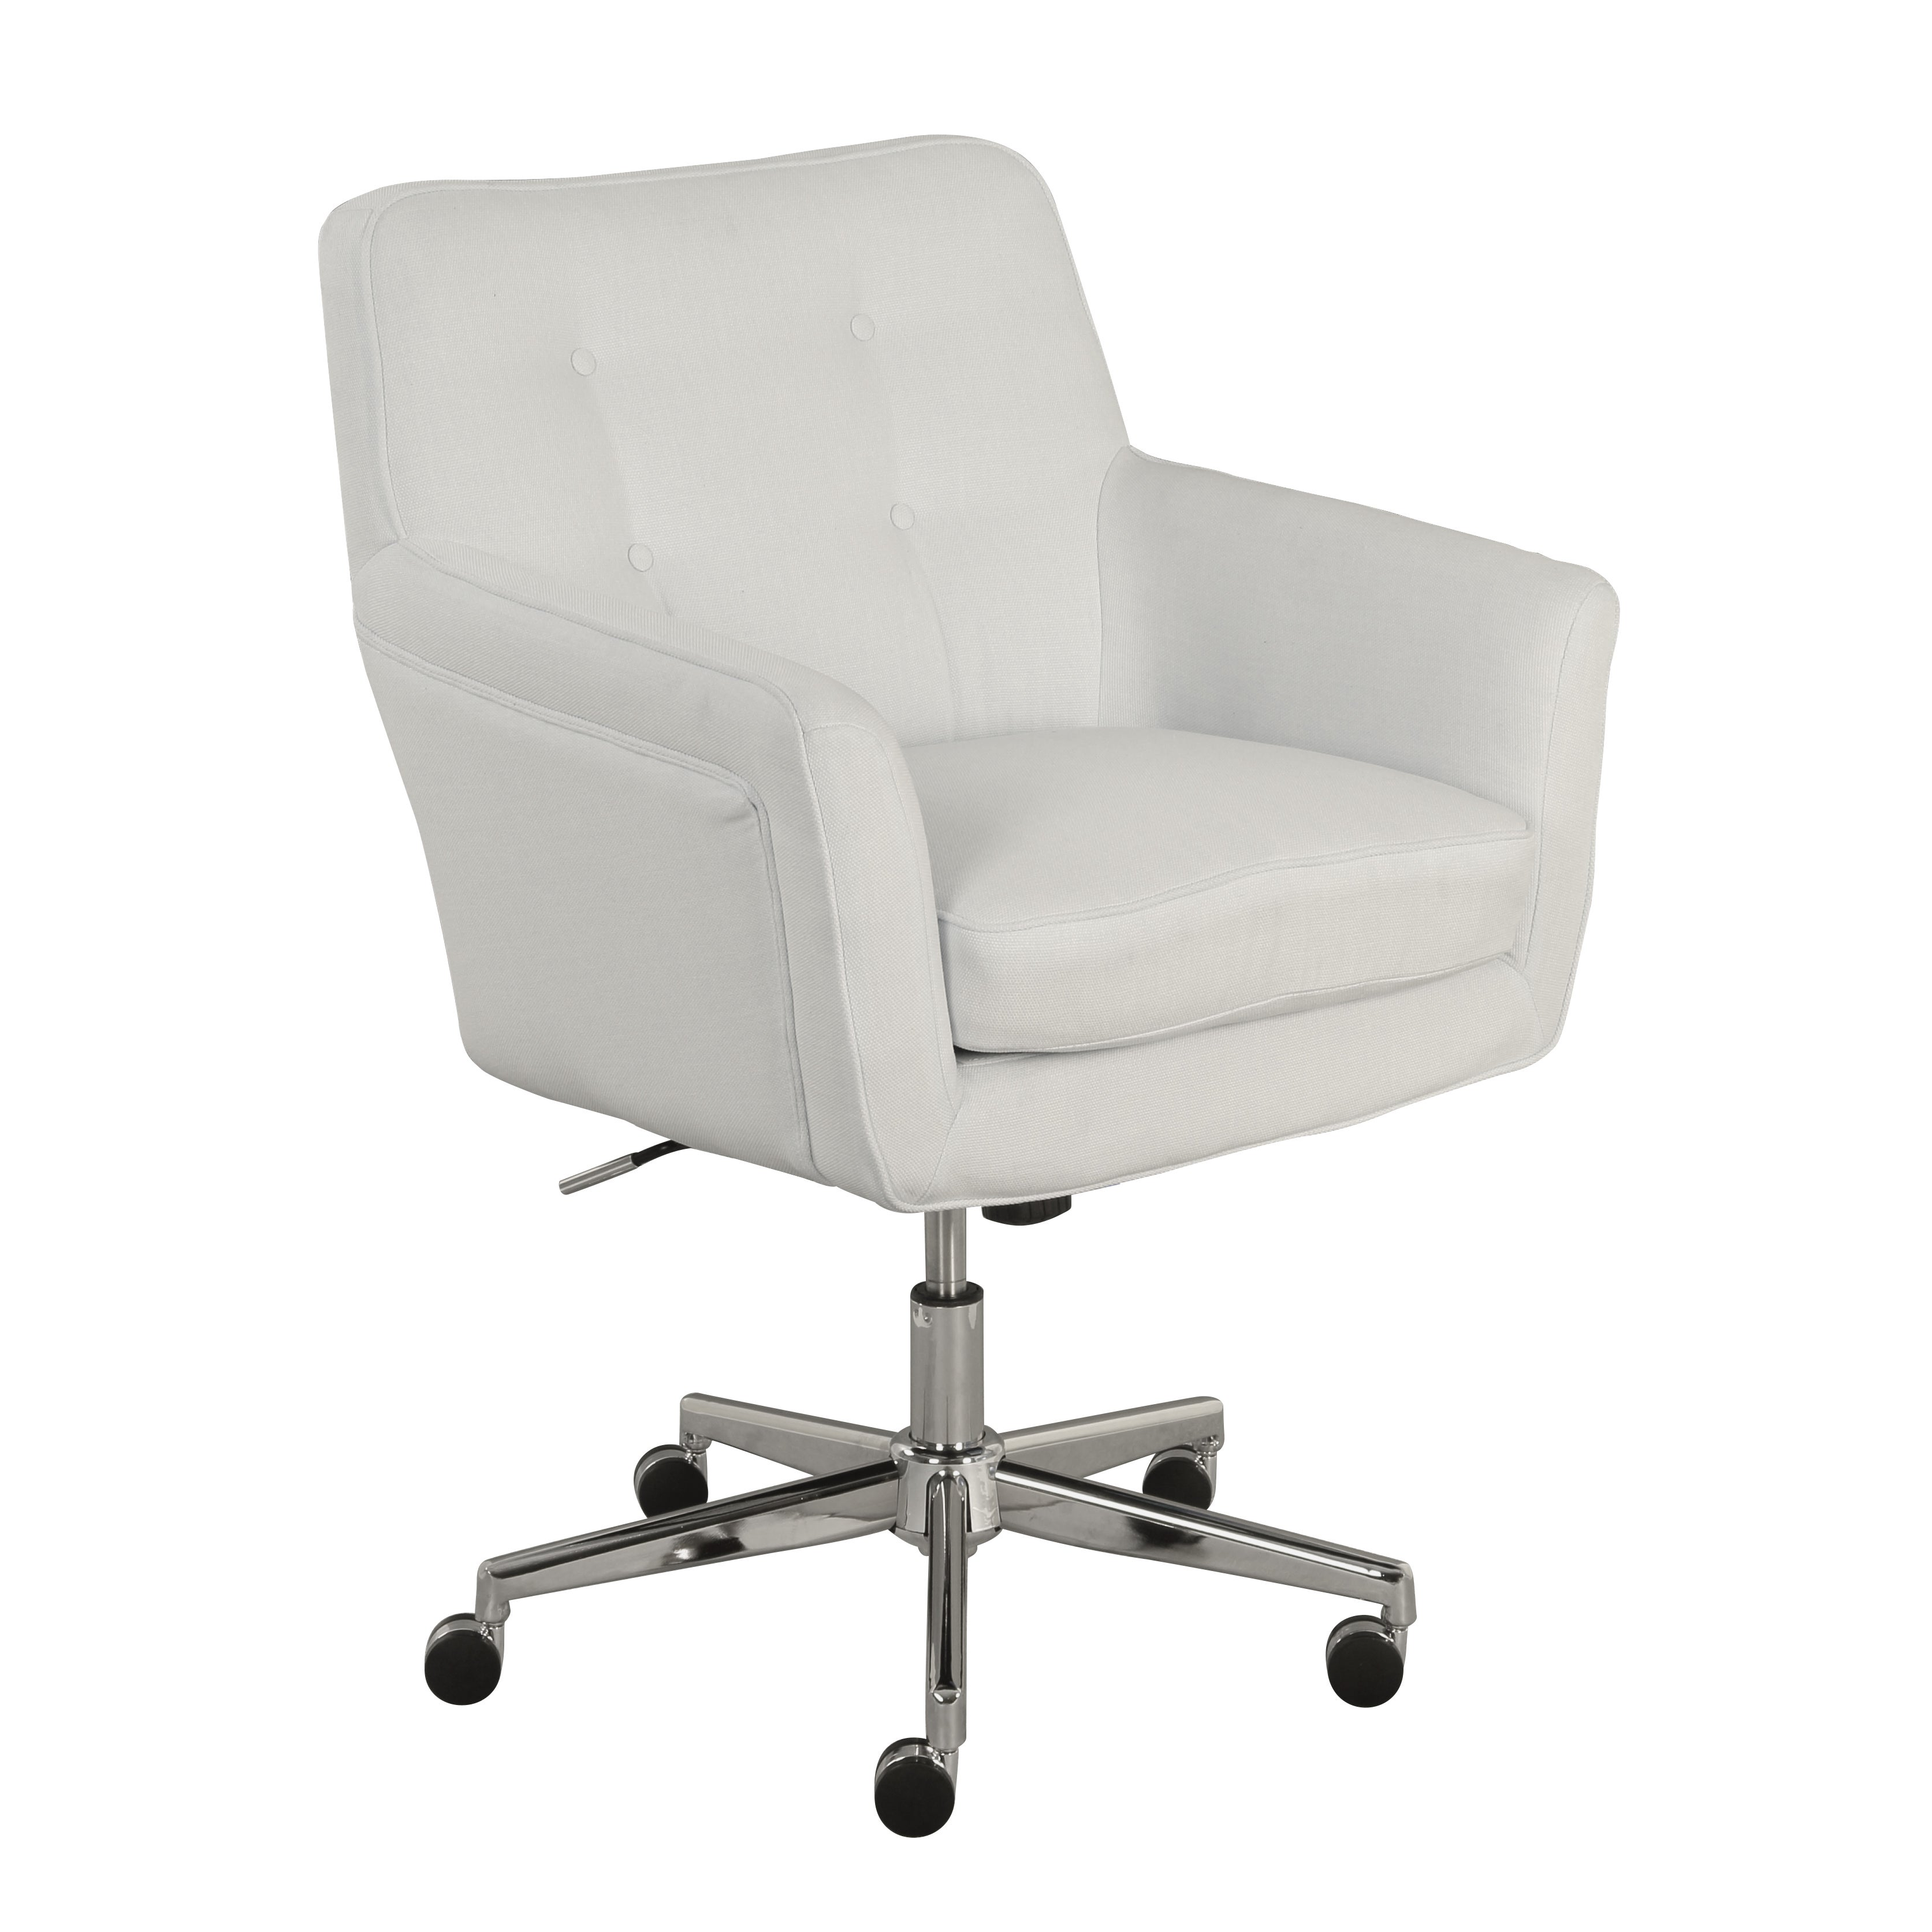 Serta Ashland Ivory Home Office Chair   Free Shipping Today   Overstock.com    22326454